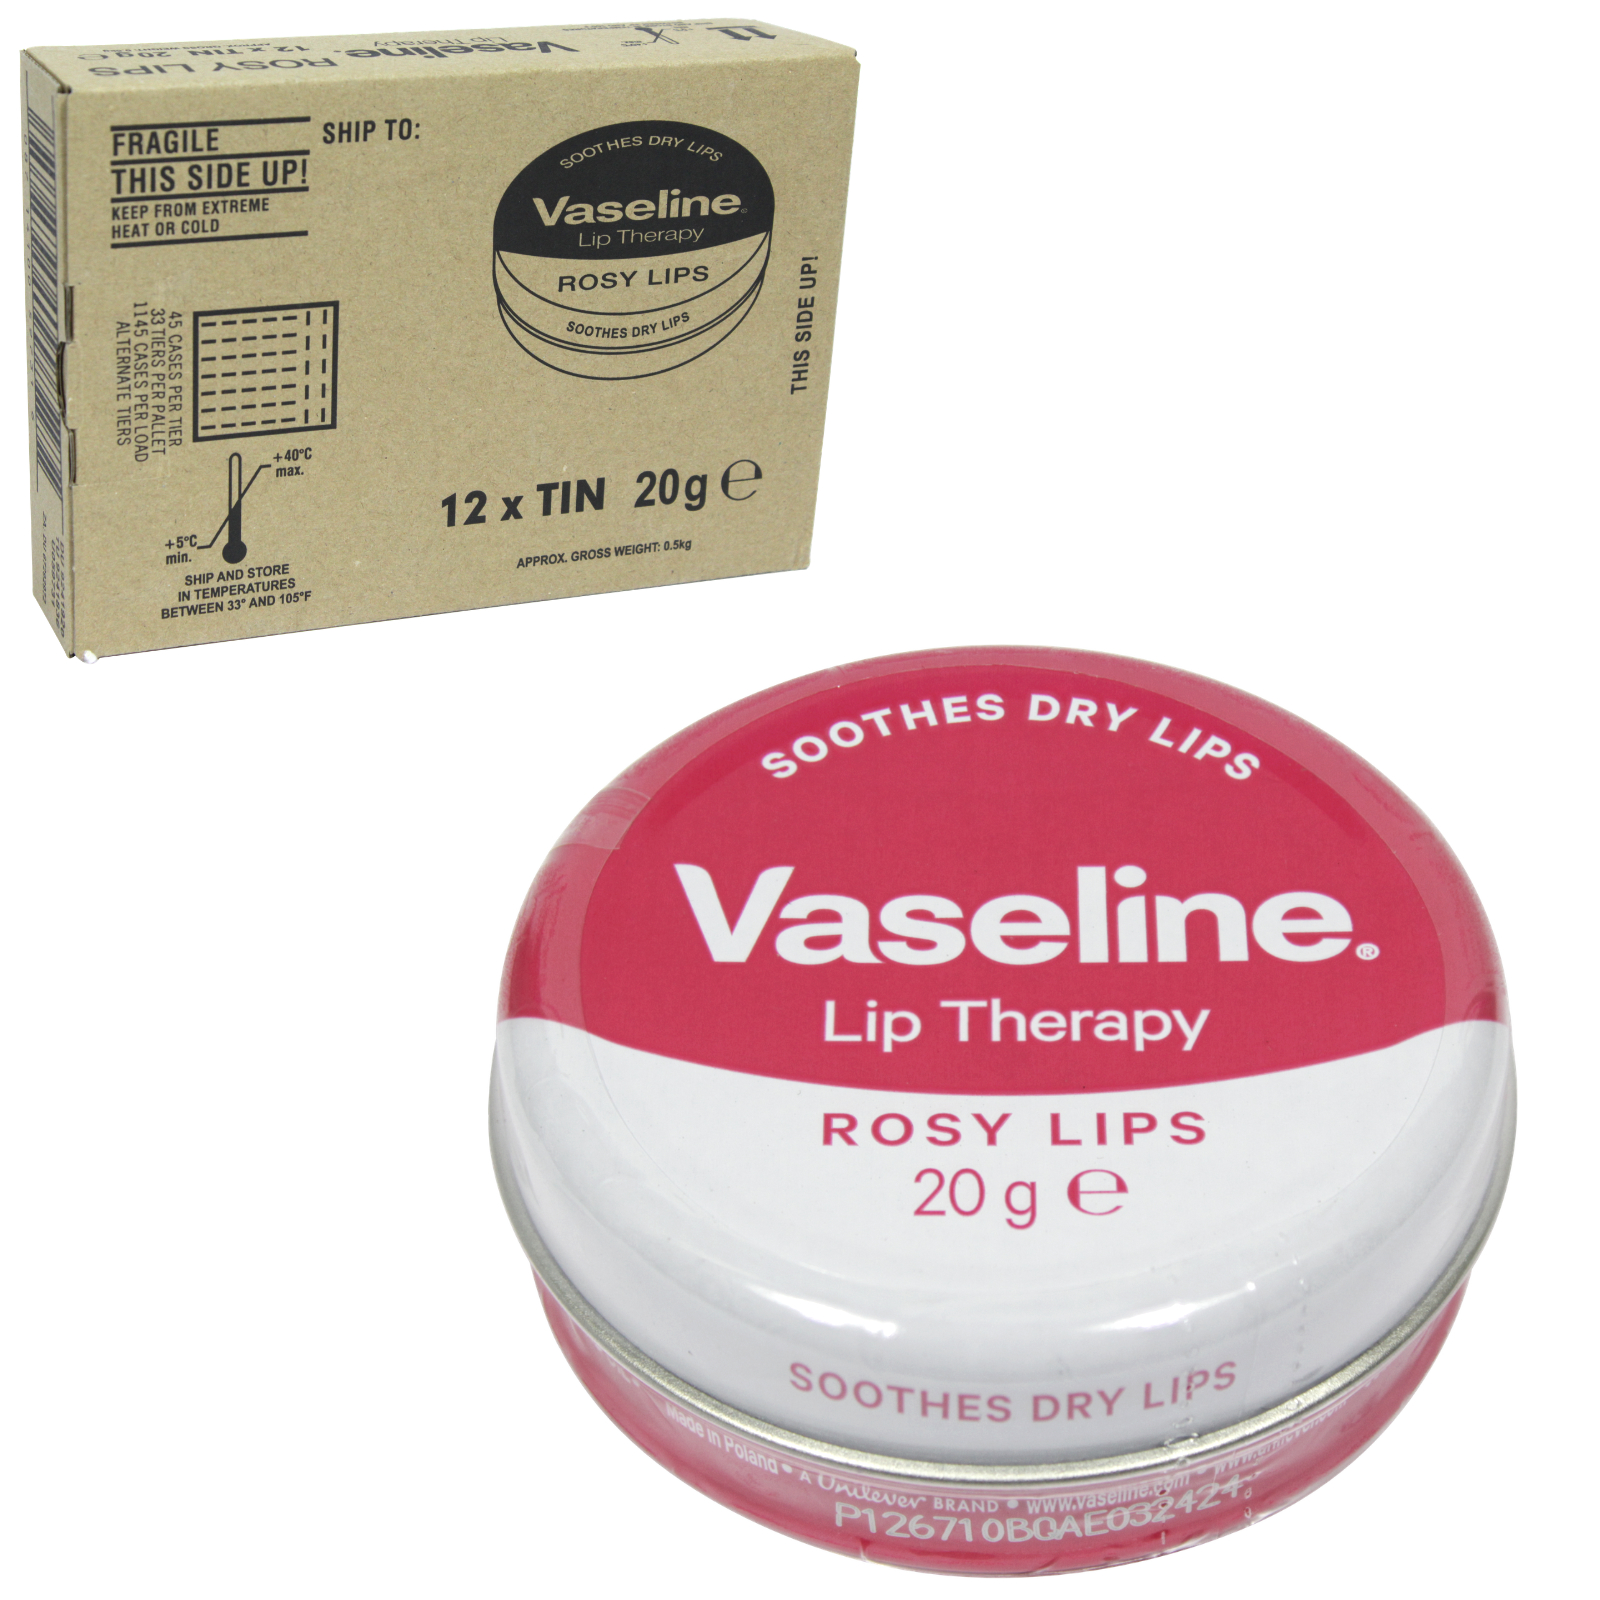 VASELINE LIP THERAPY 20GM ROSY LIPS ROSE AND ALMOND OIL X12